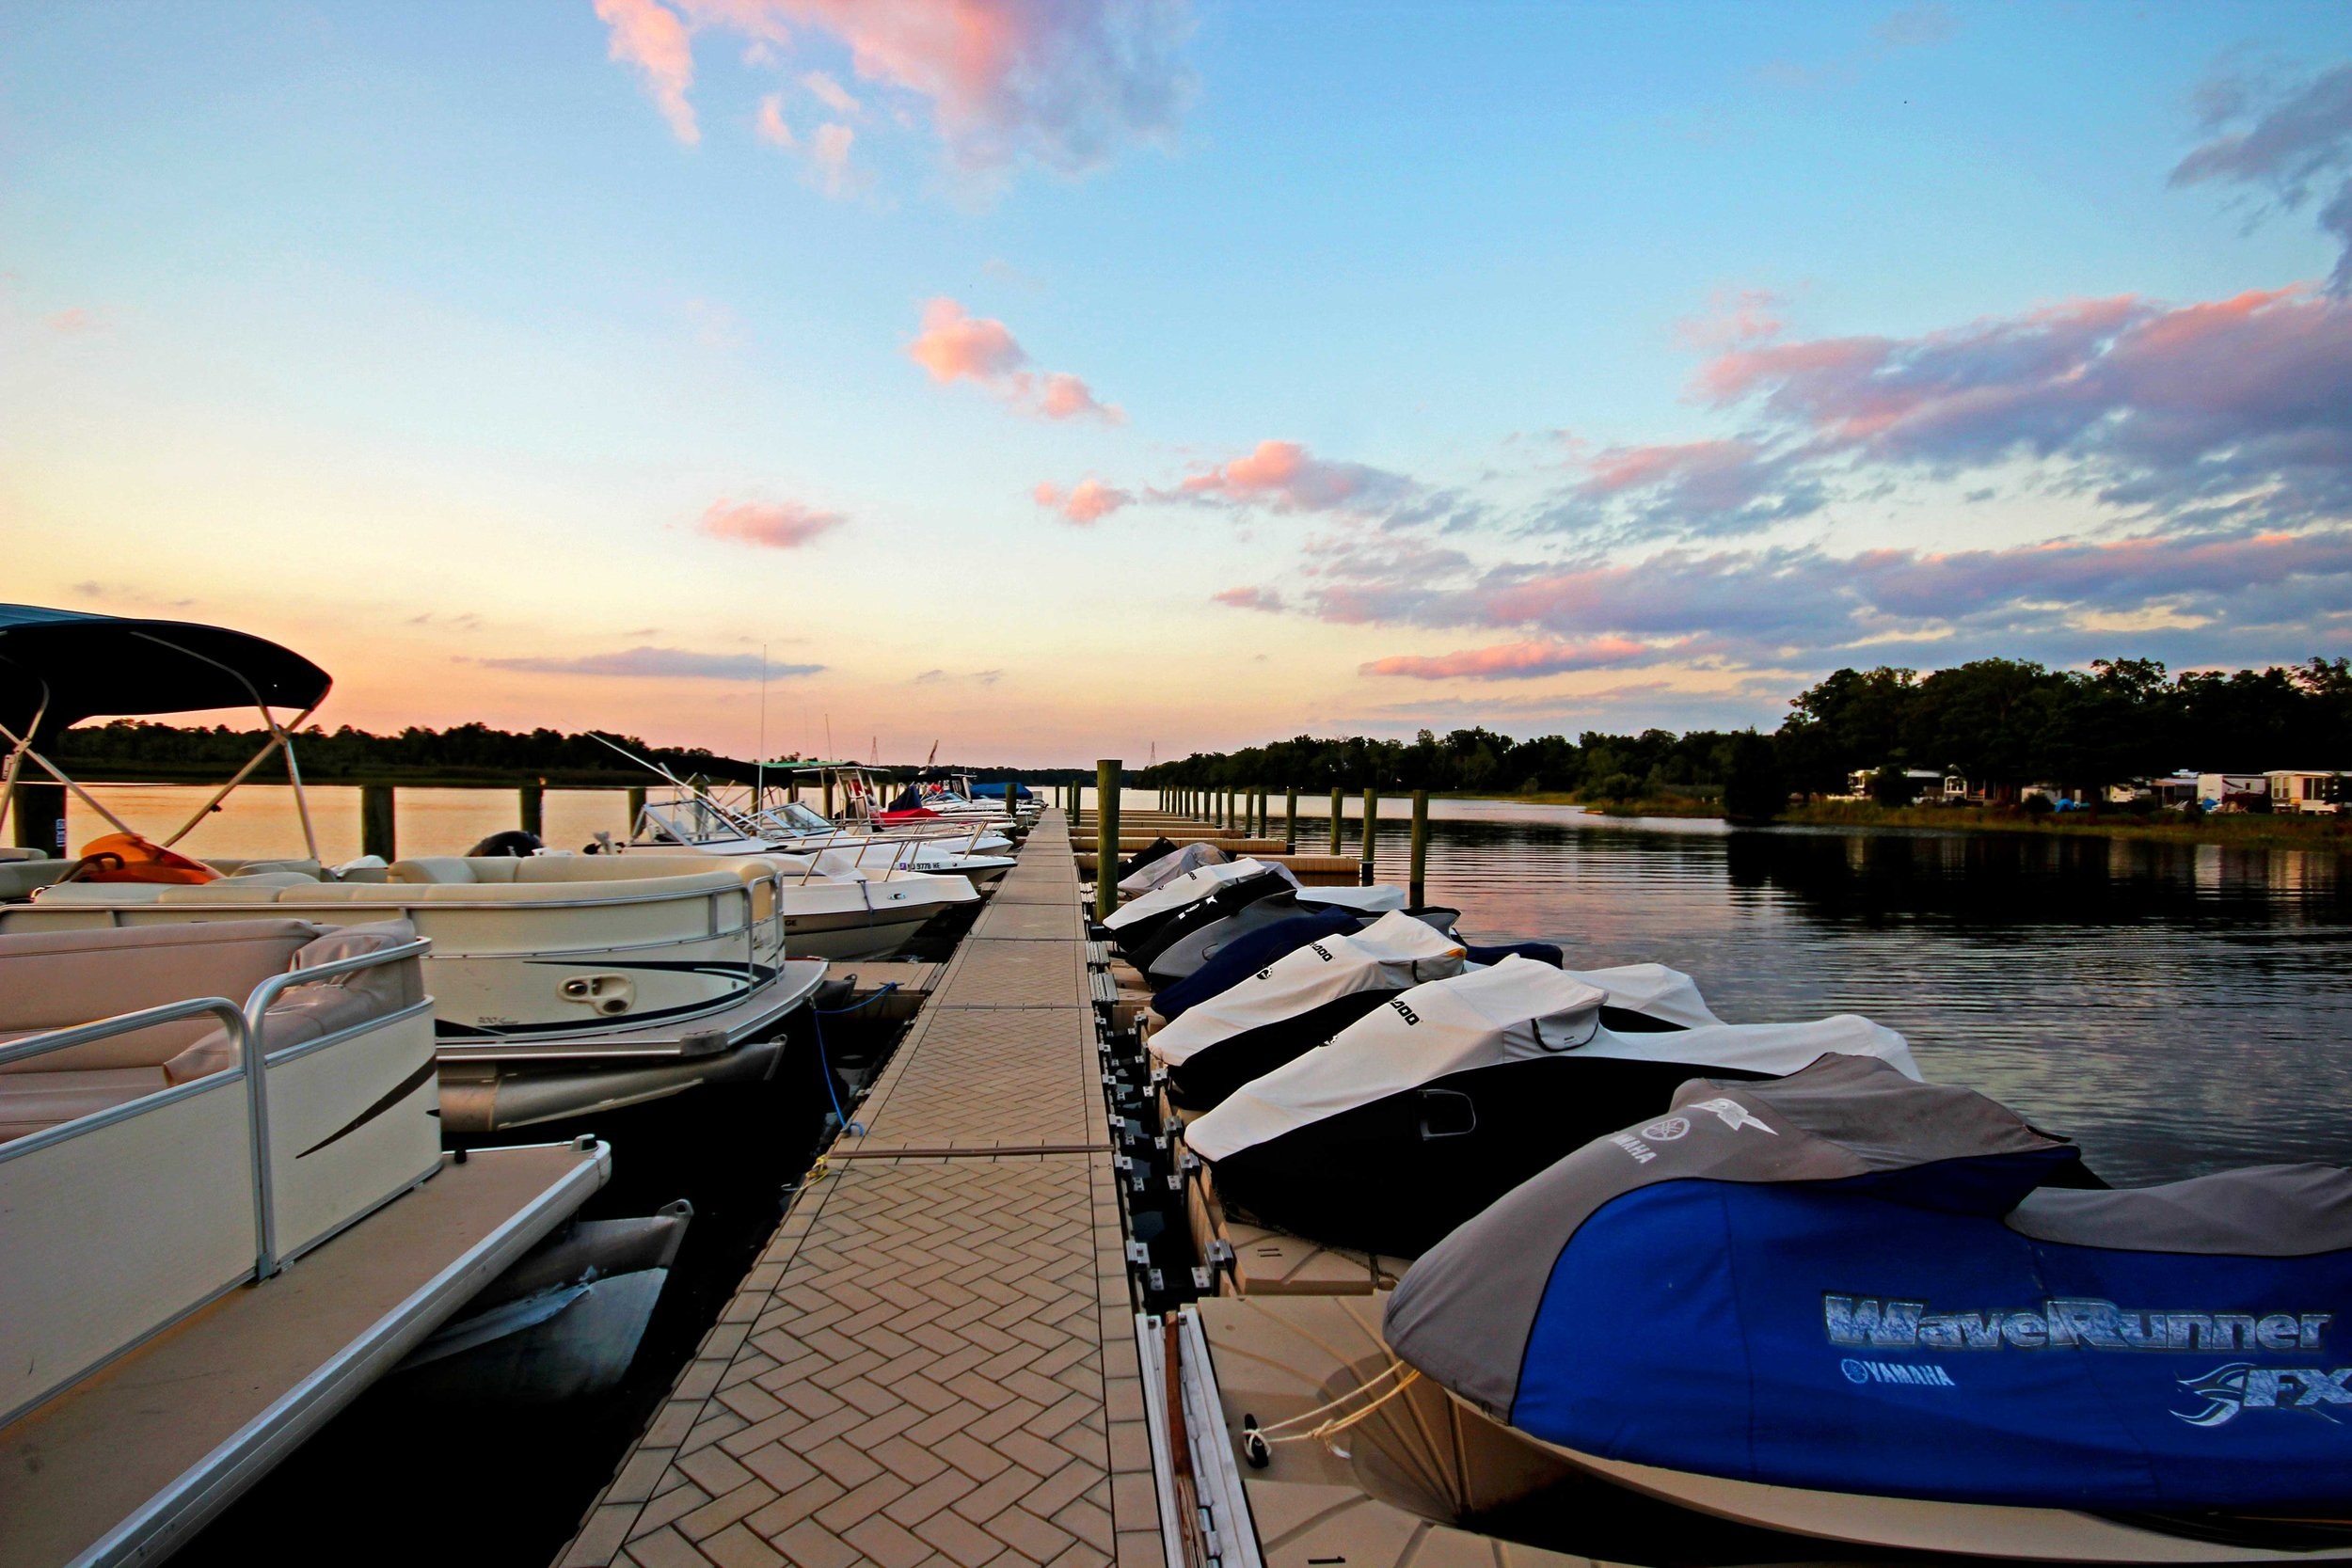 River-Beach-Resort-and-Marina-Wednesday-Night-(16).jpg